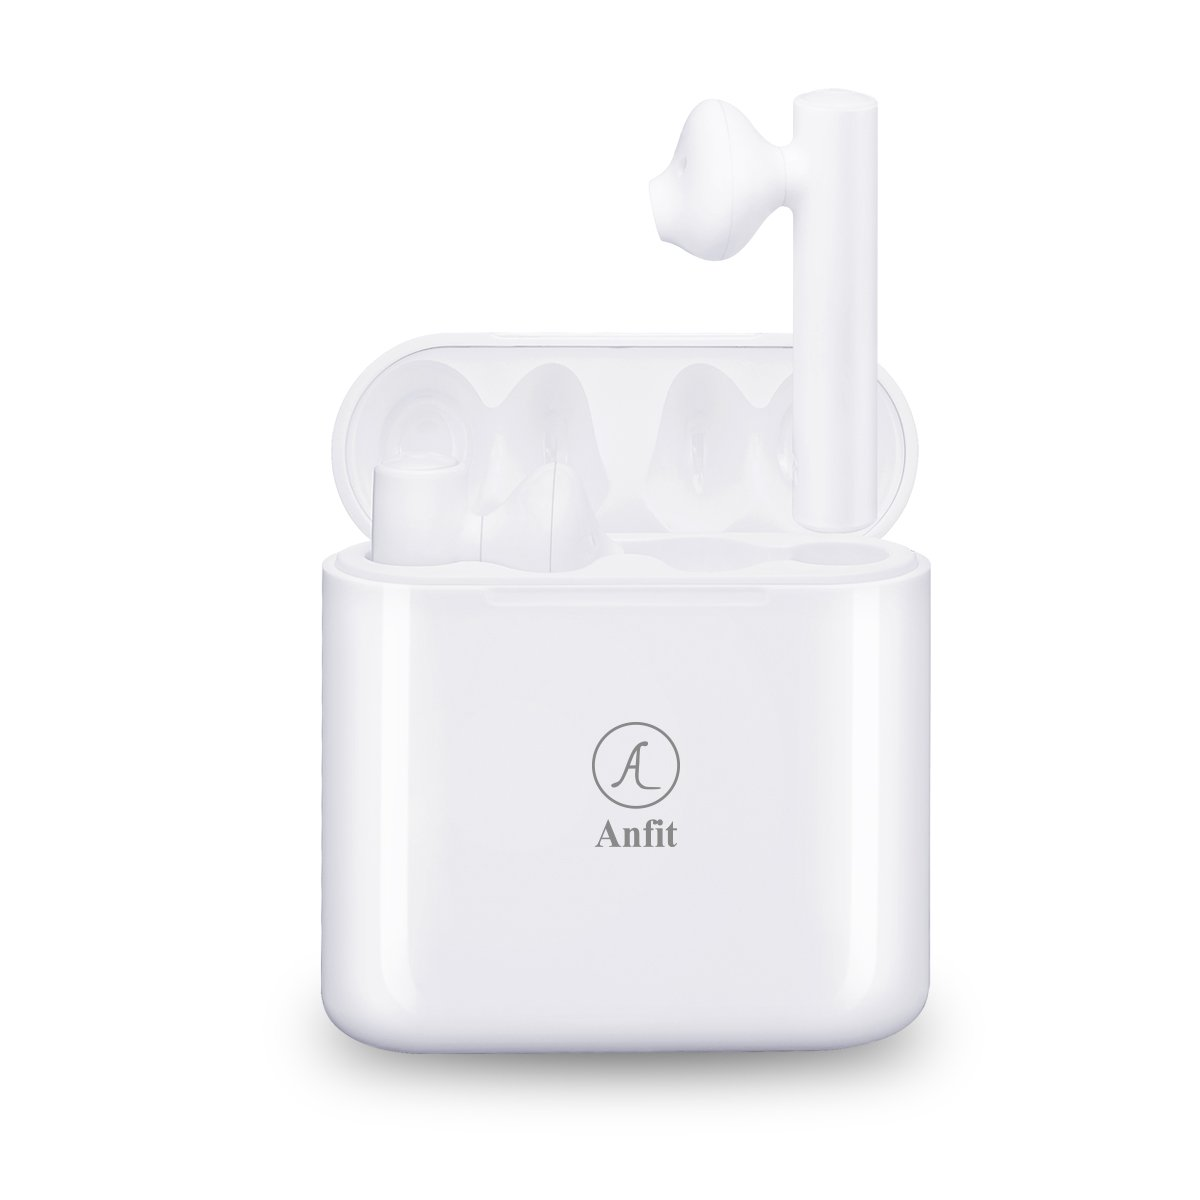 Anfit TWS Wireless Bluetooth V4.2 Earbuds, Double Earpieces, Twins Earphones With Charging Box, Noise Cancelling, Sweatproof, Stereo headset for iphone X/8/7/6s/6 Plus ipad Samsung Galaxy S8 etc